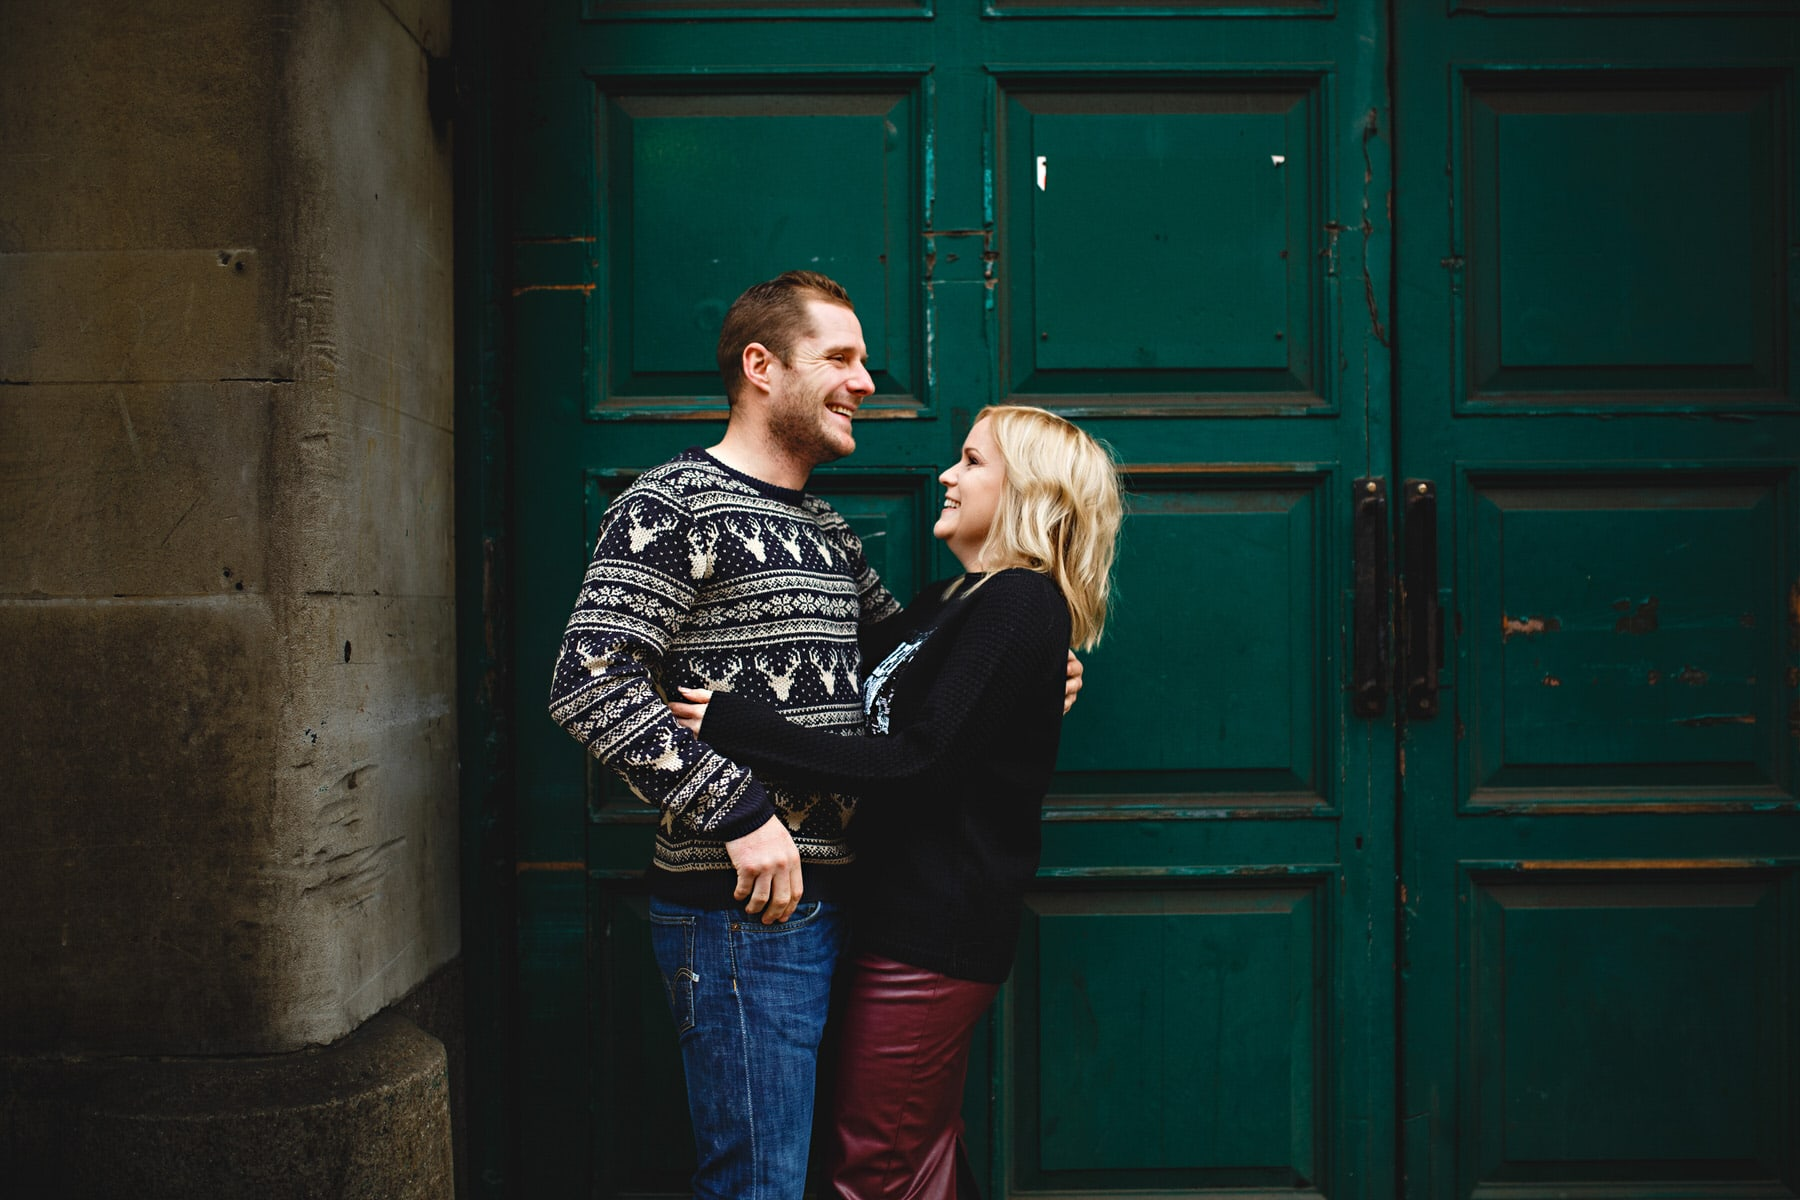 couple stood together in front of a green door in the city